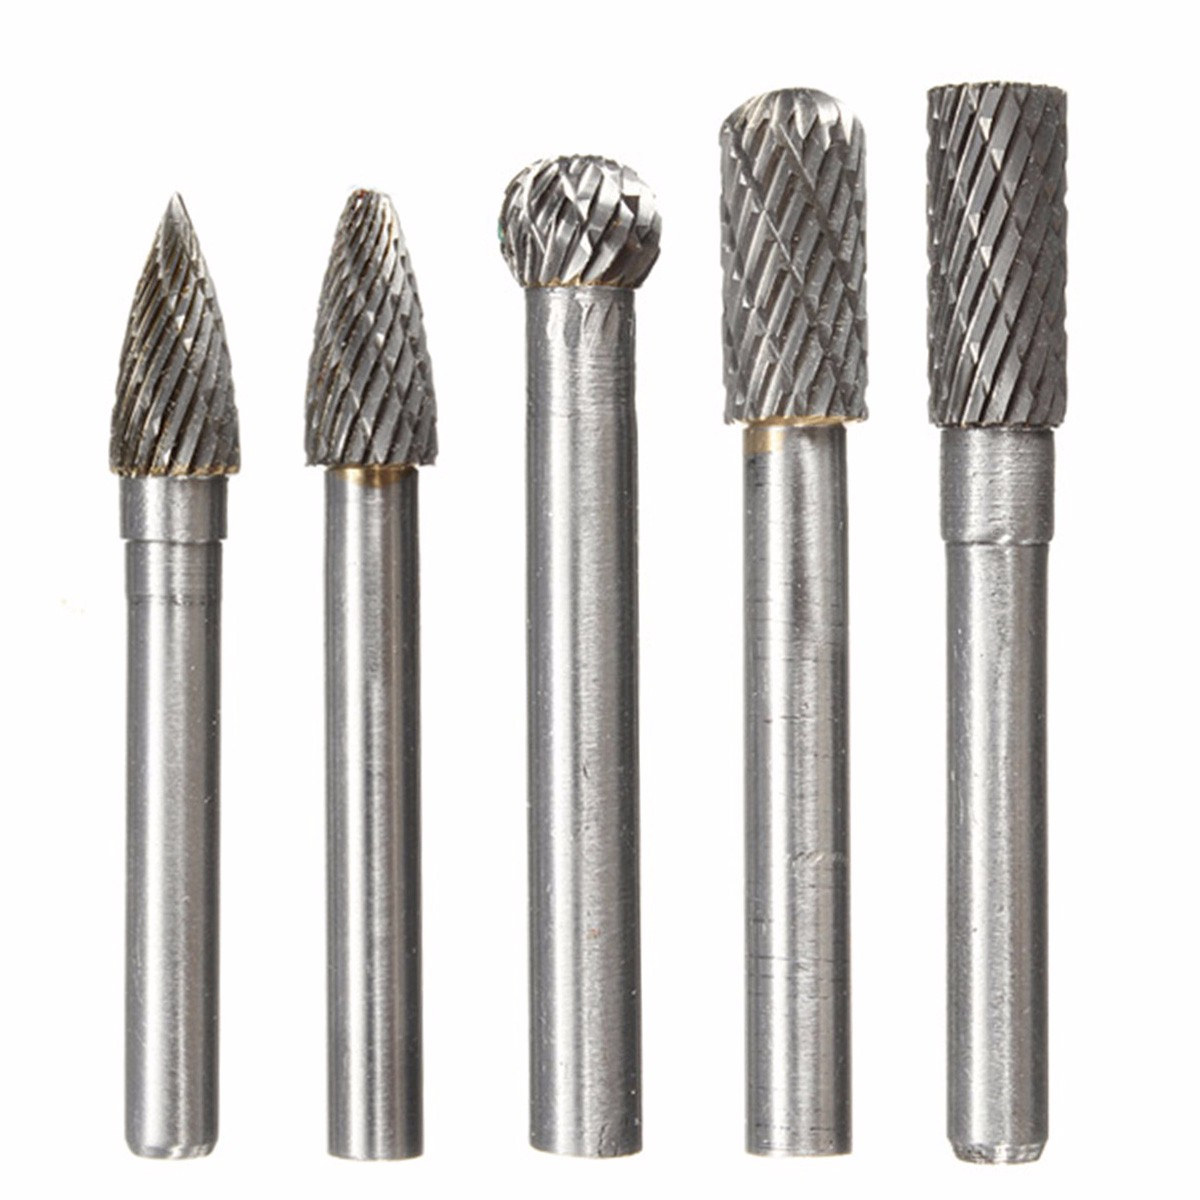 цены Type A C D F G 6*8MM Head Tungsten Carbide Rotary Tool Point Burr Die Grinder Abrasive Tools Drill Milling Carving Bit Tools